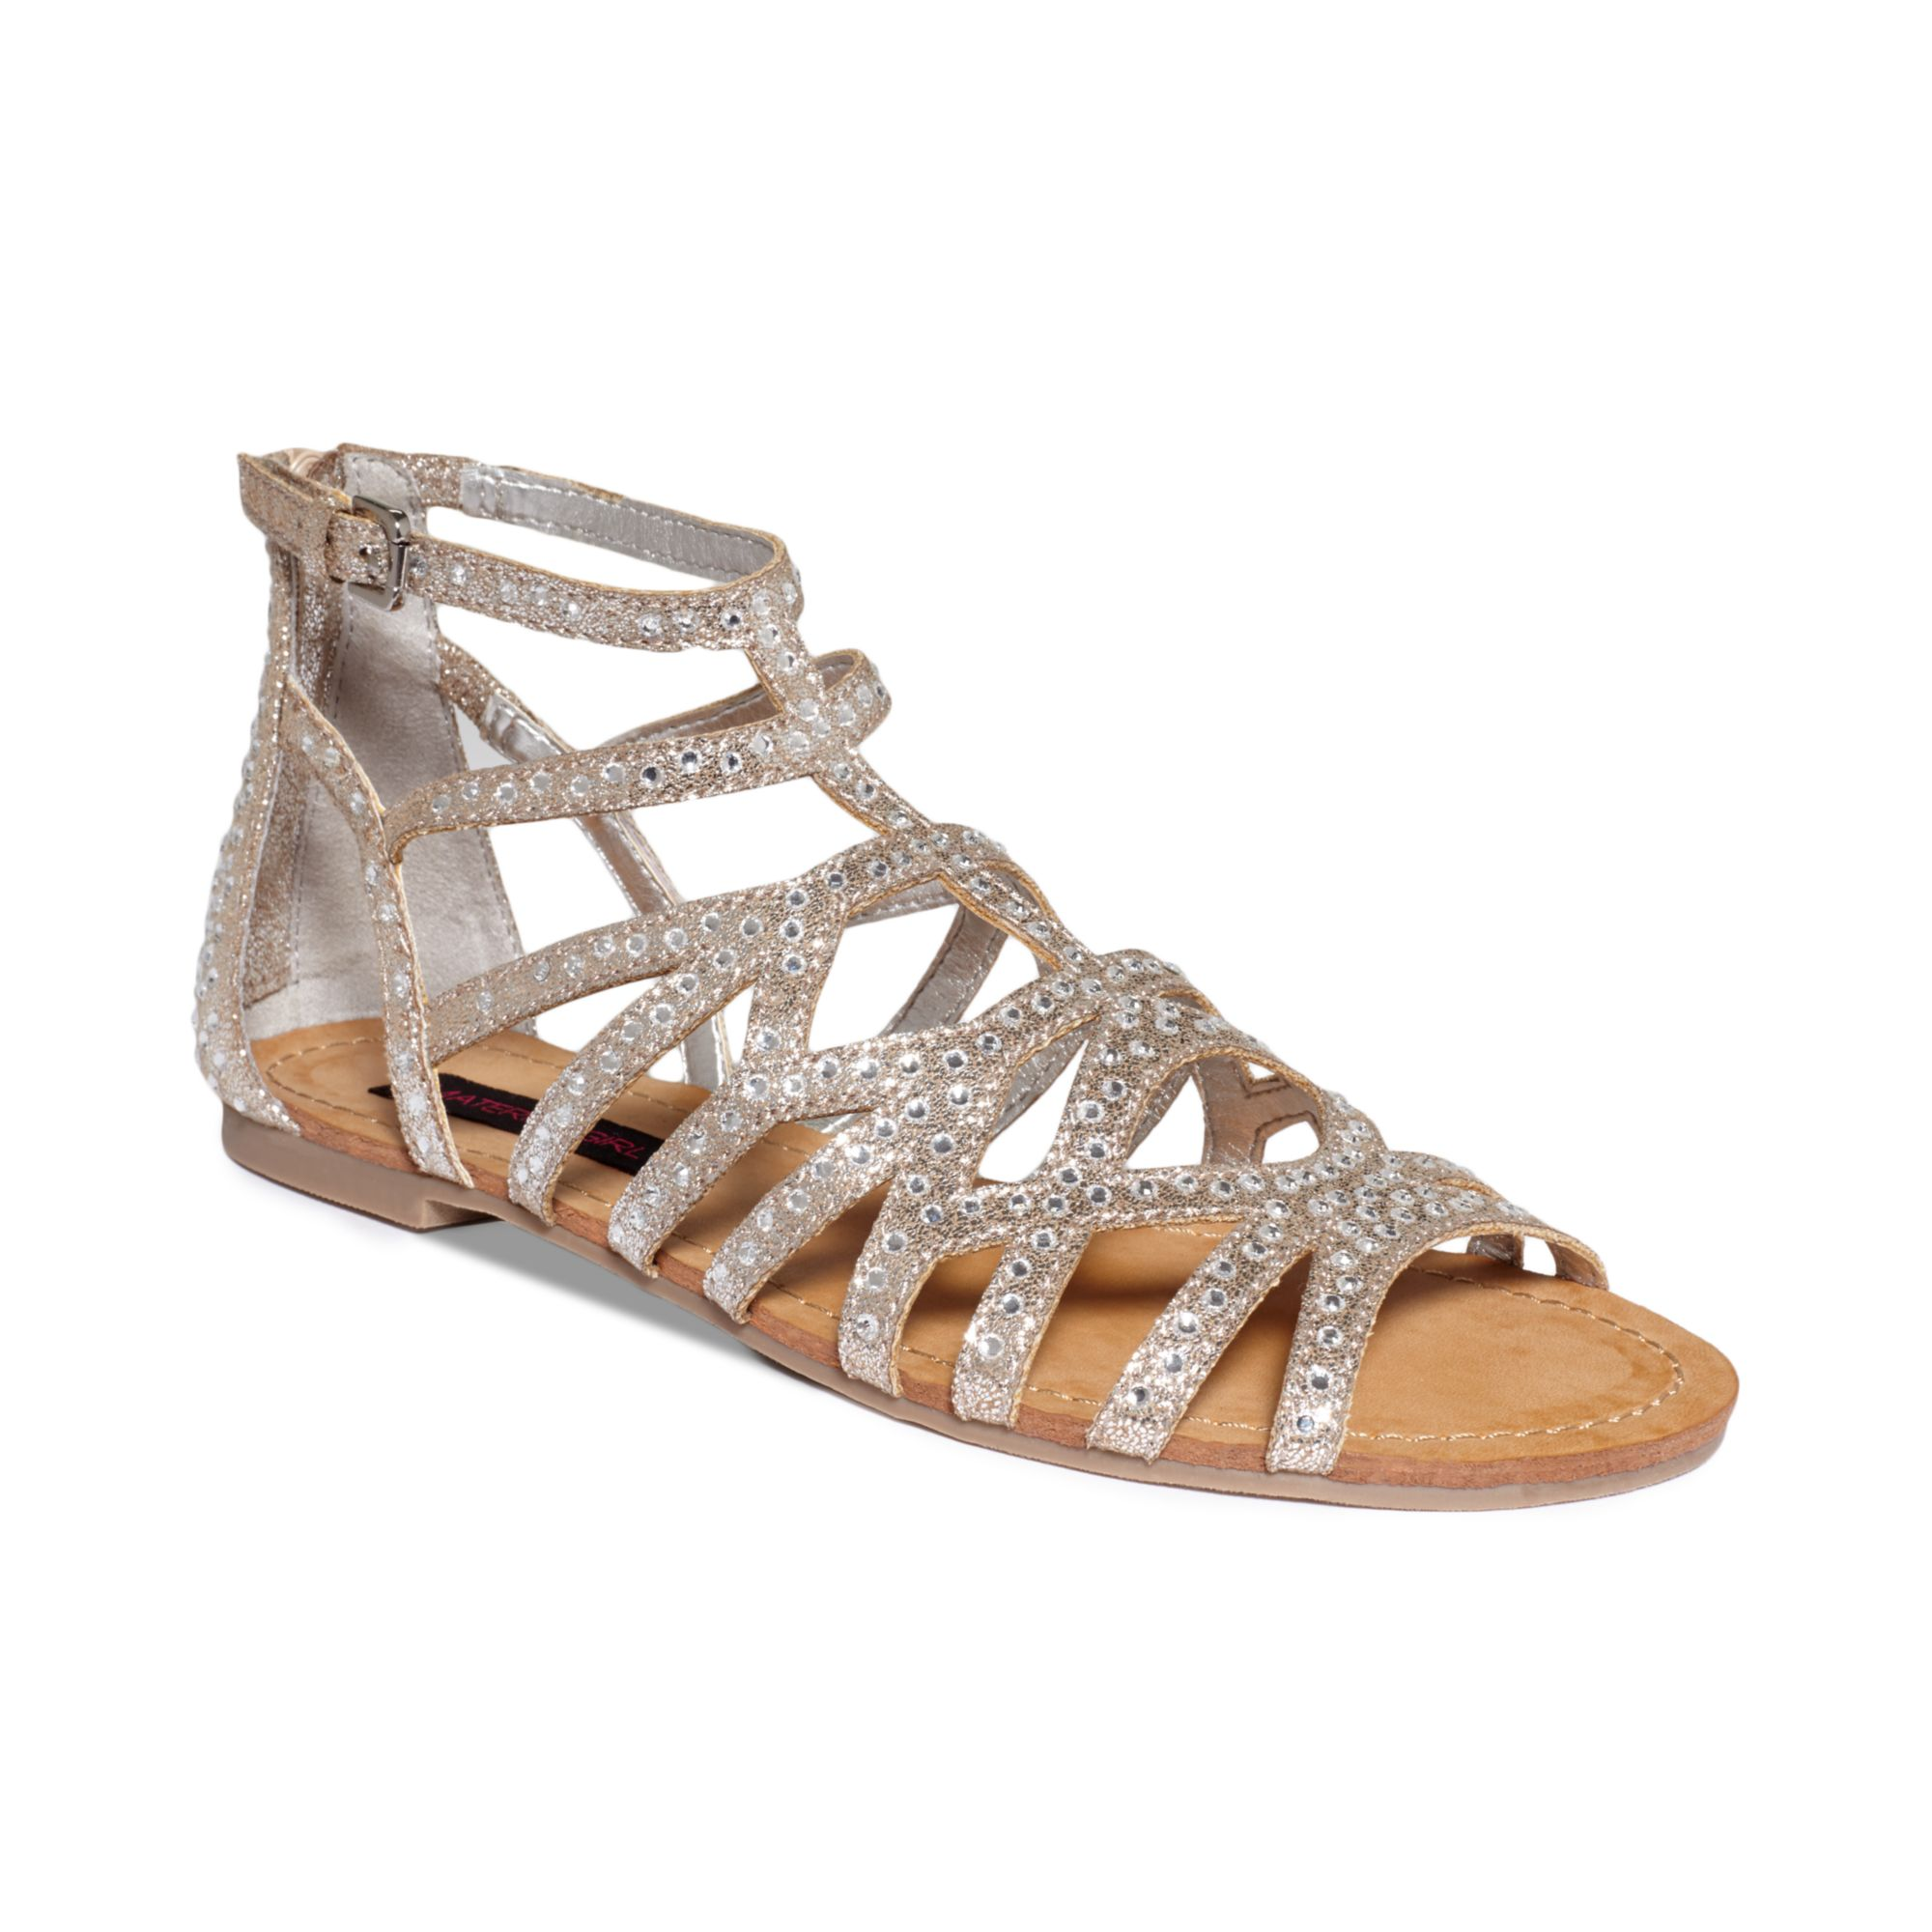 Lyst Material Girl Aries Gladiator Flat Sandals In Gray